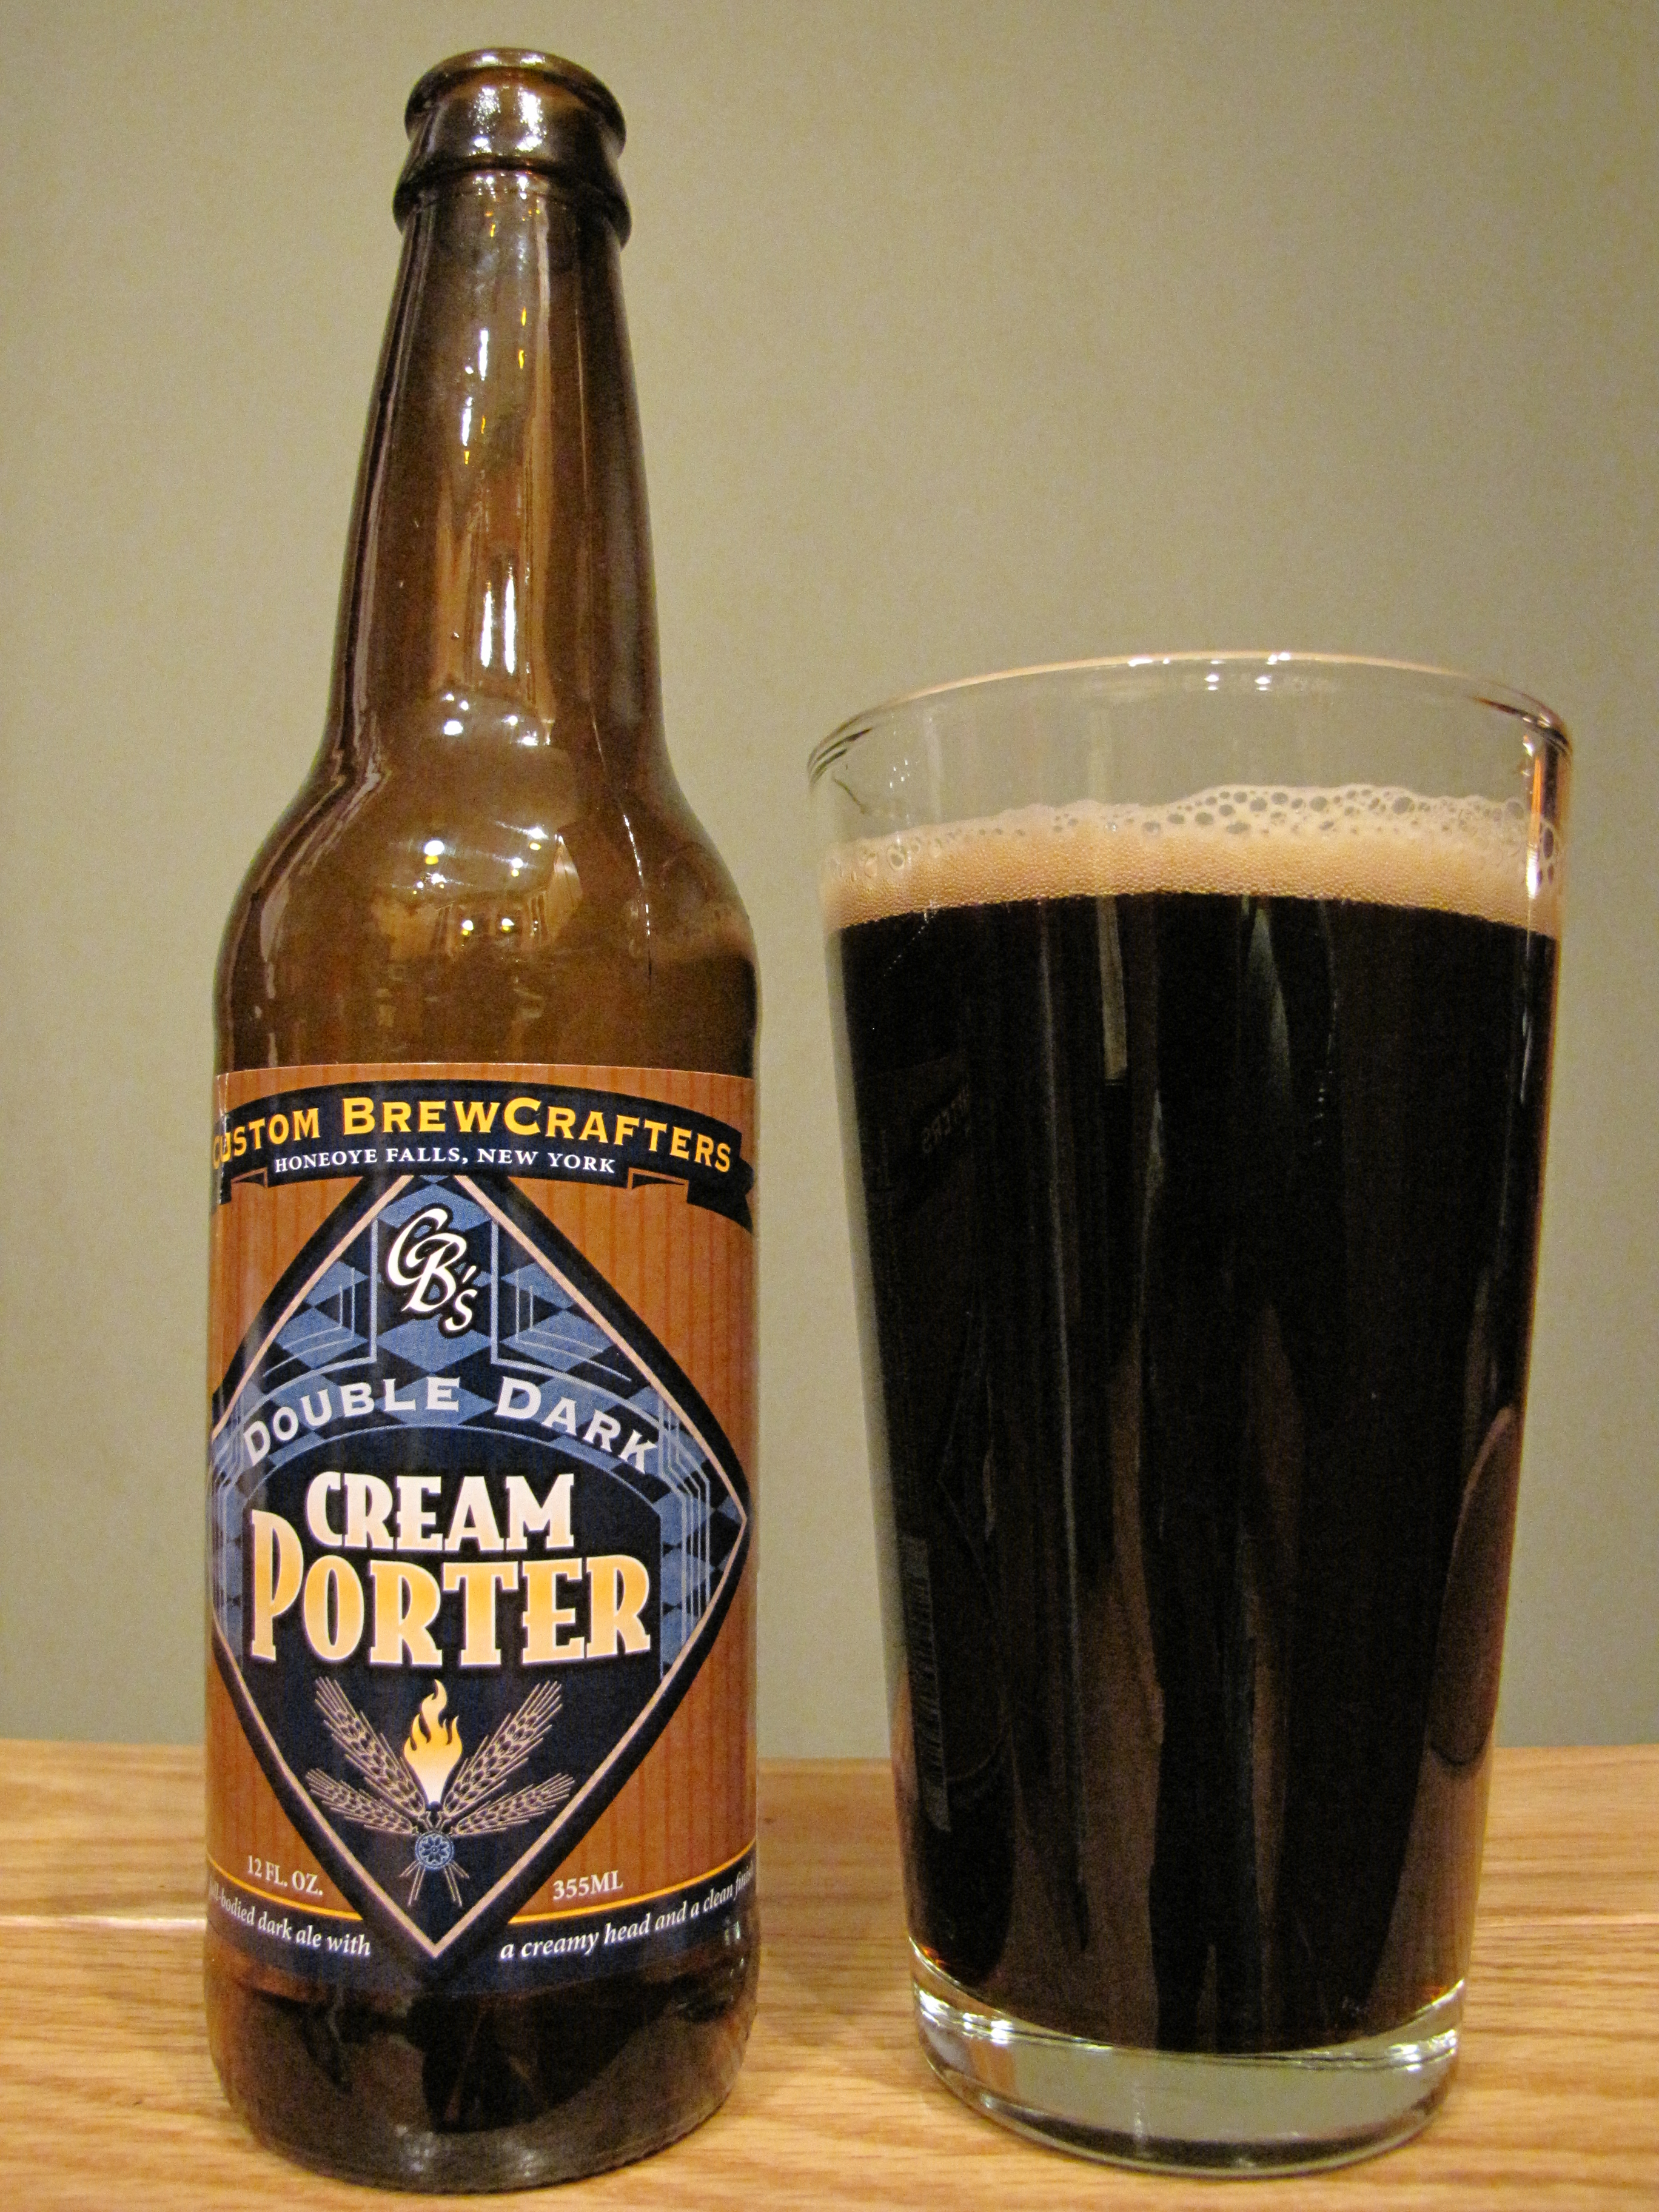 Custom Brewcrafters Double Dark Cream Porter